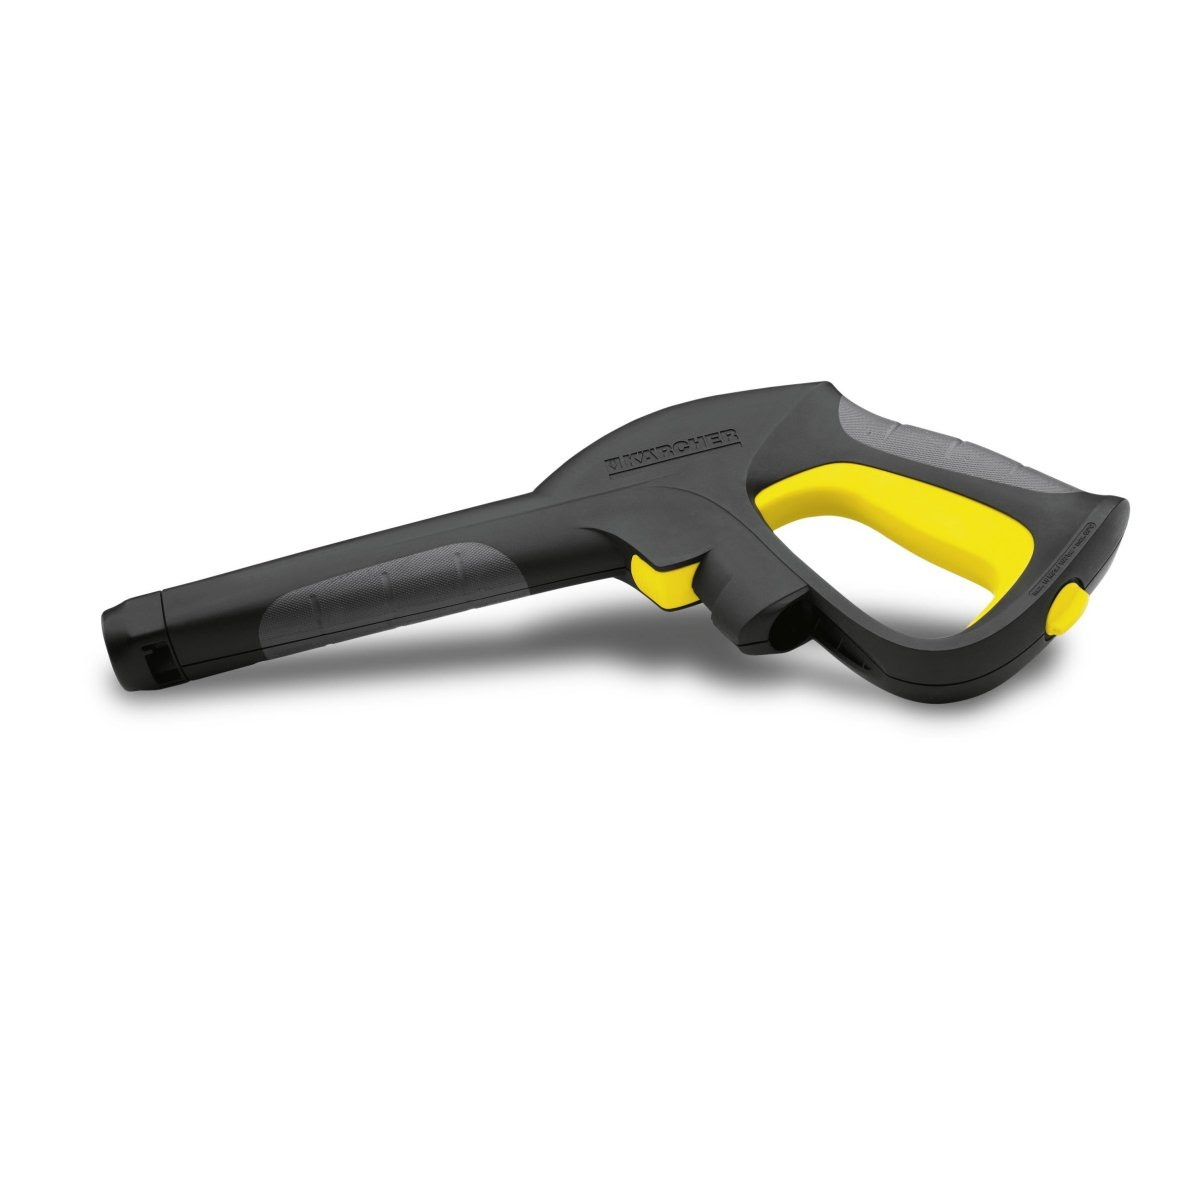 pistolet karcher quick connect